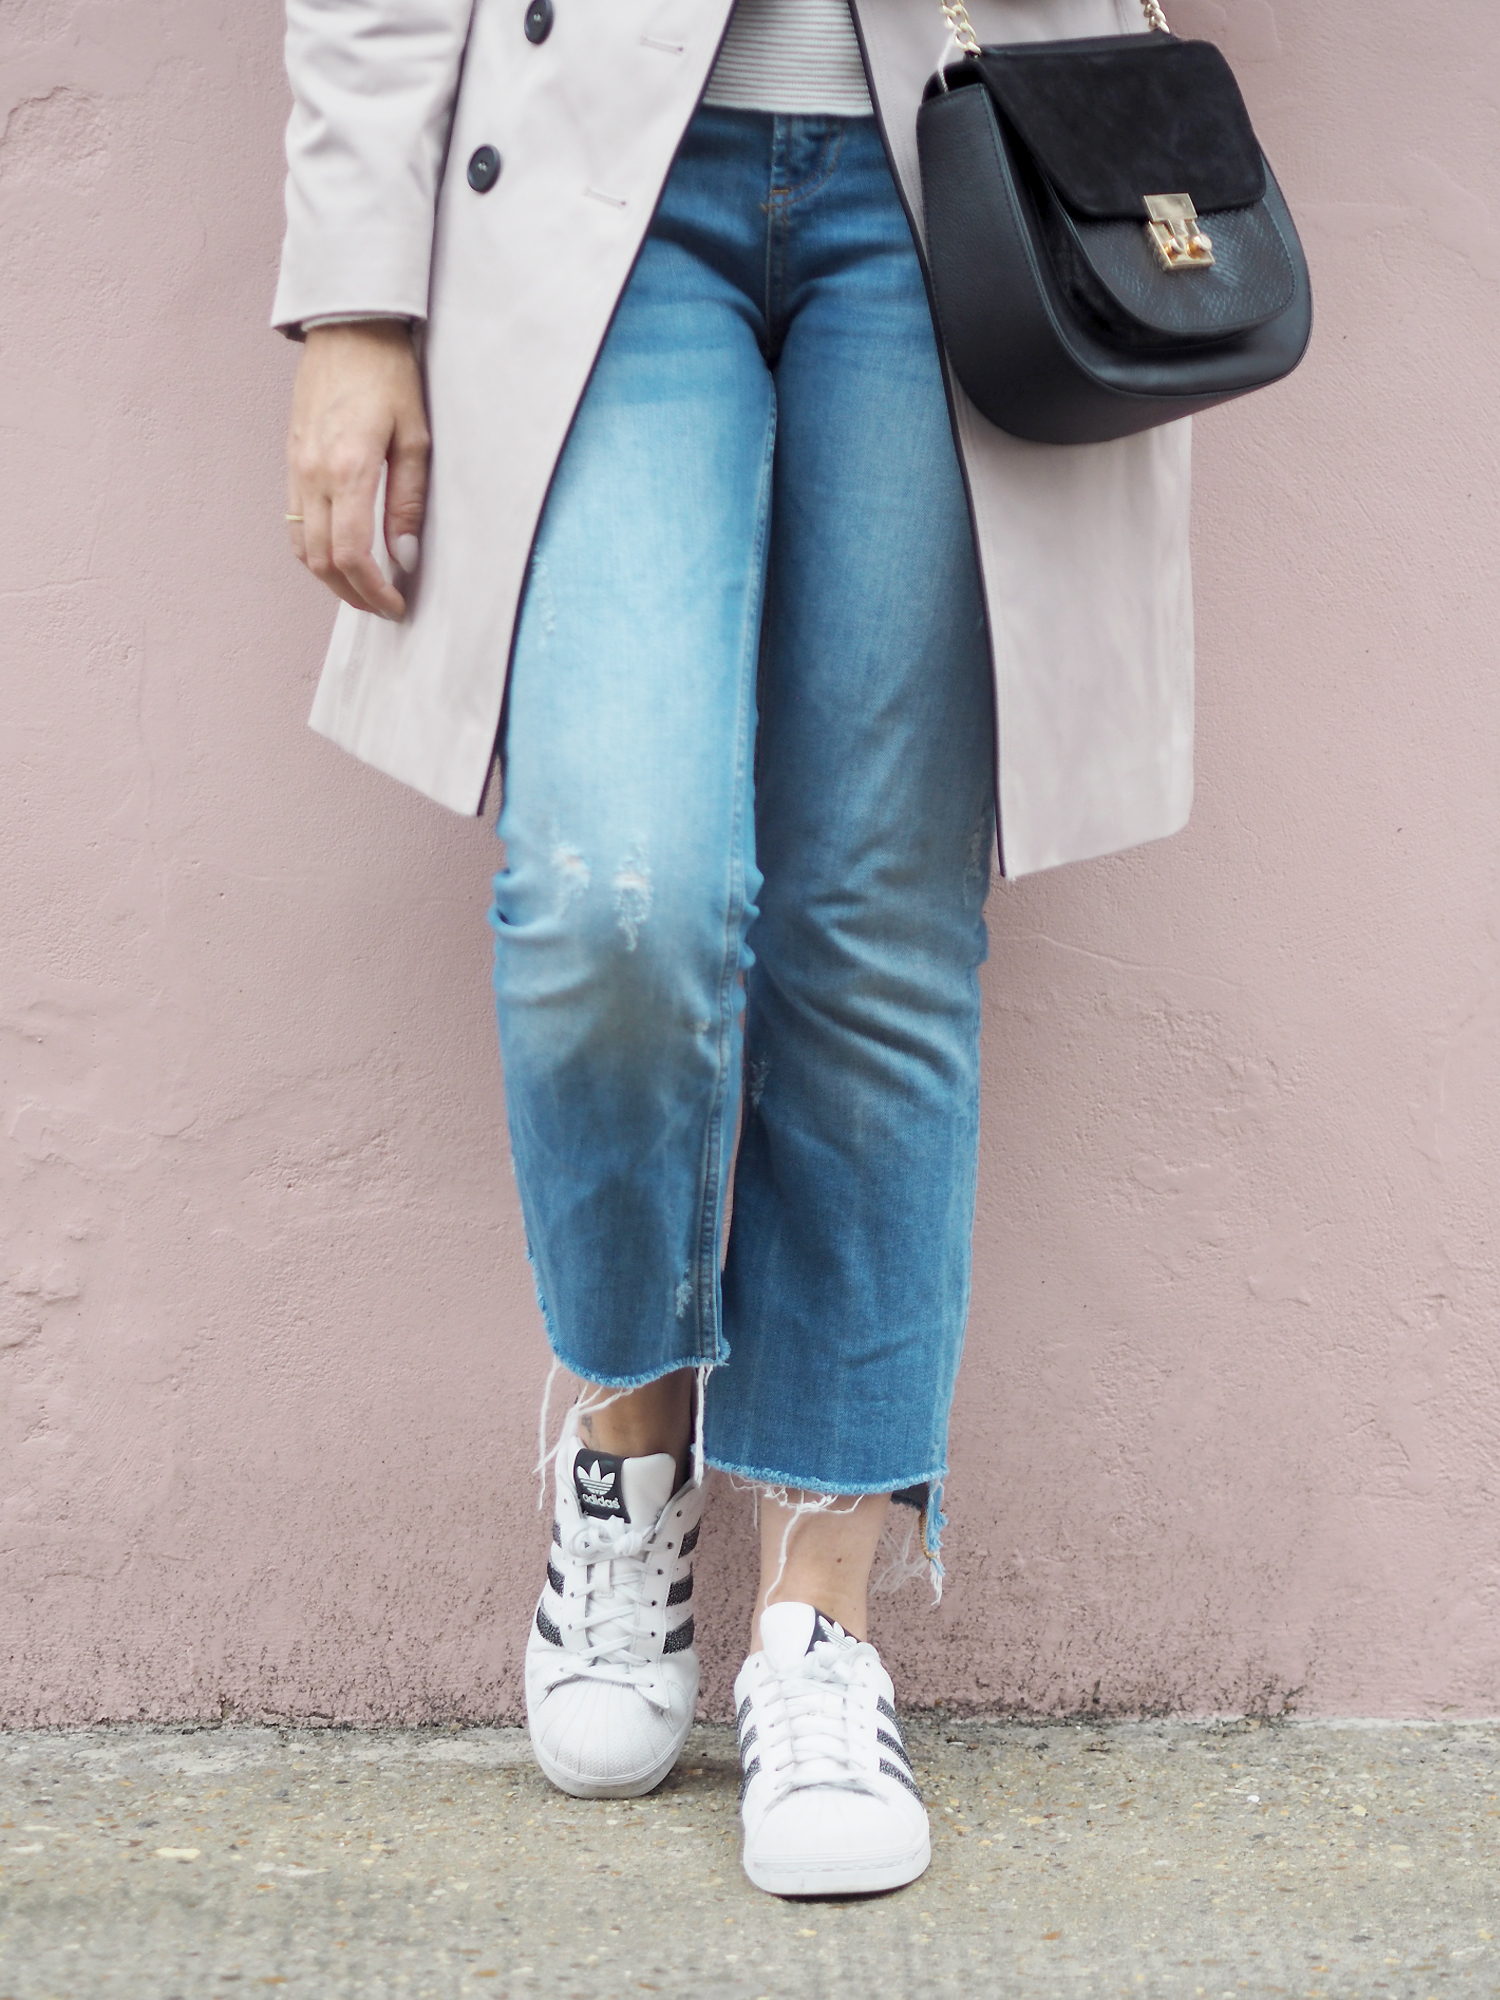 denim and Adidas trainers